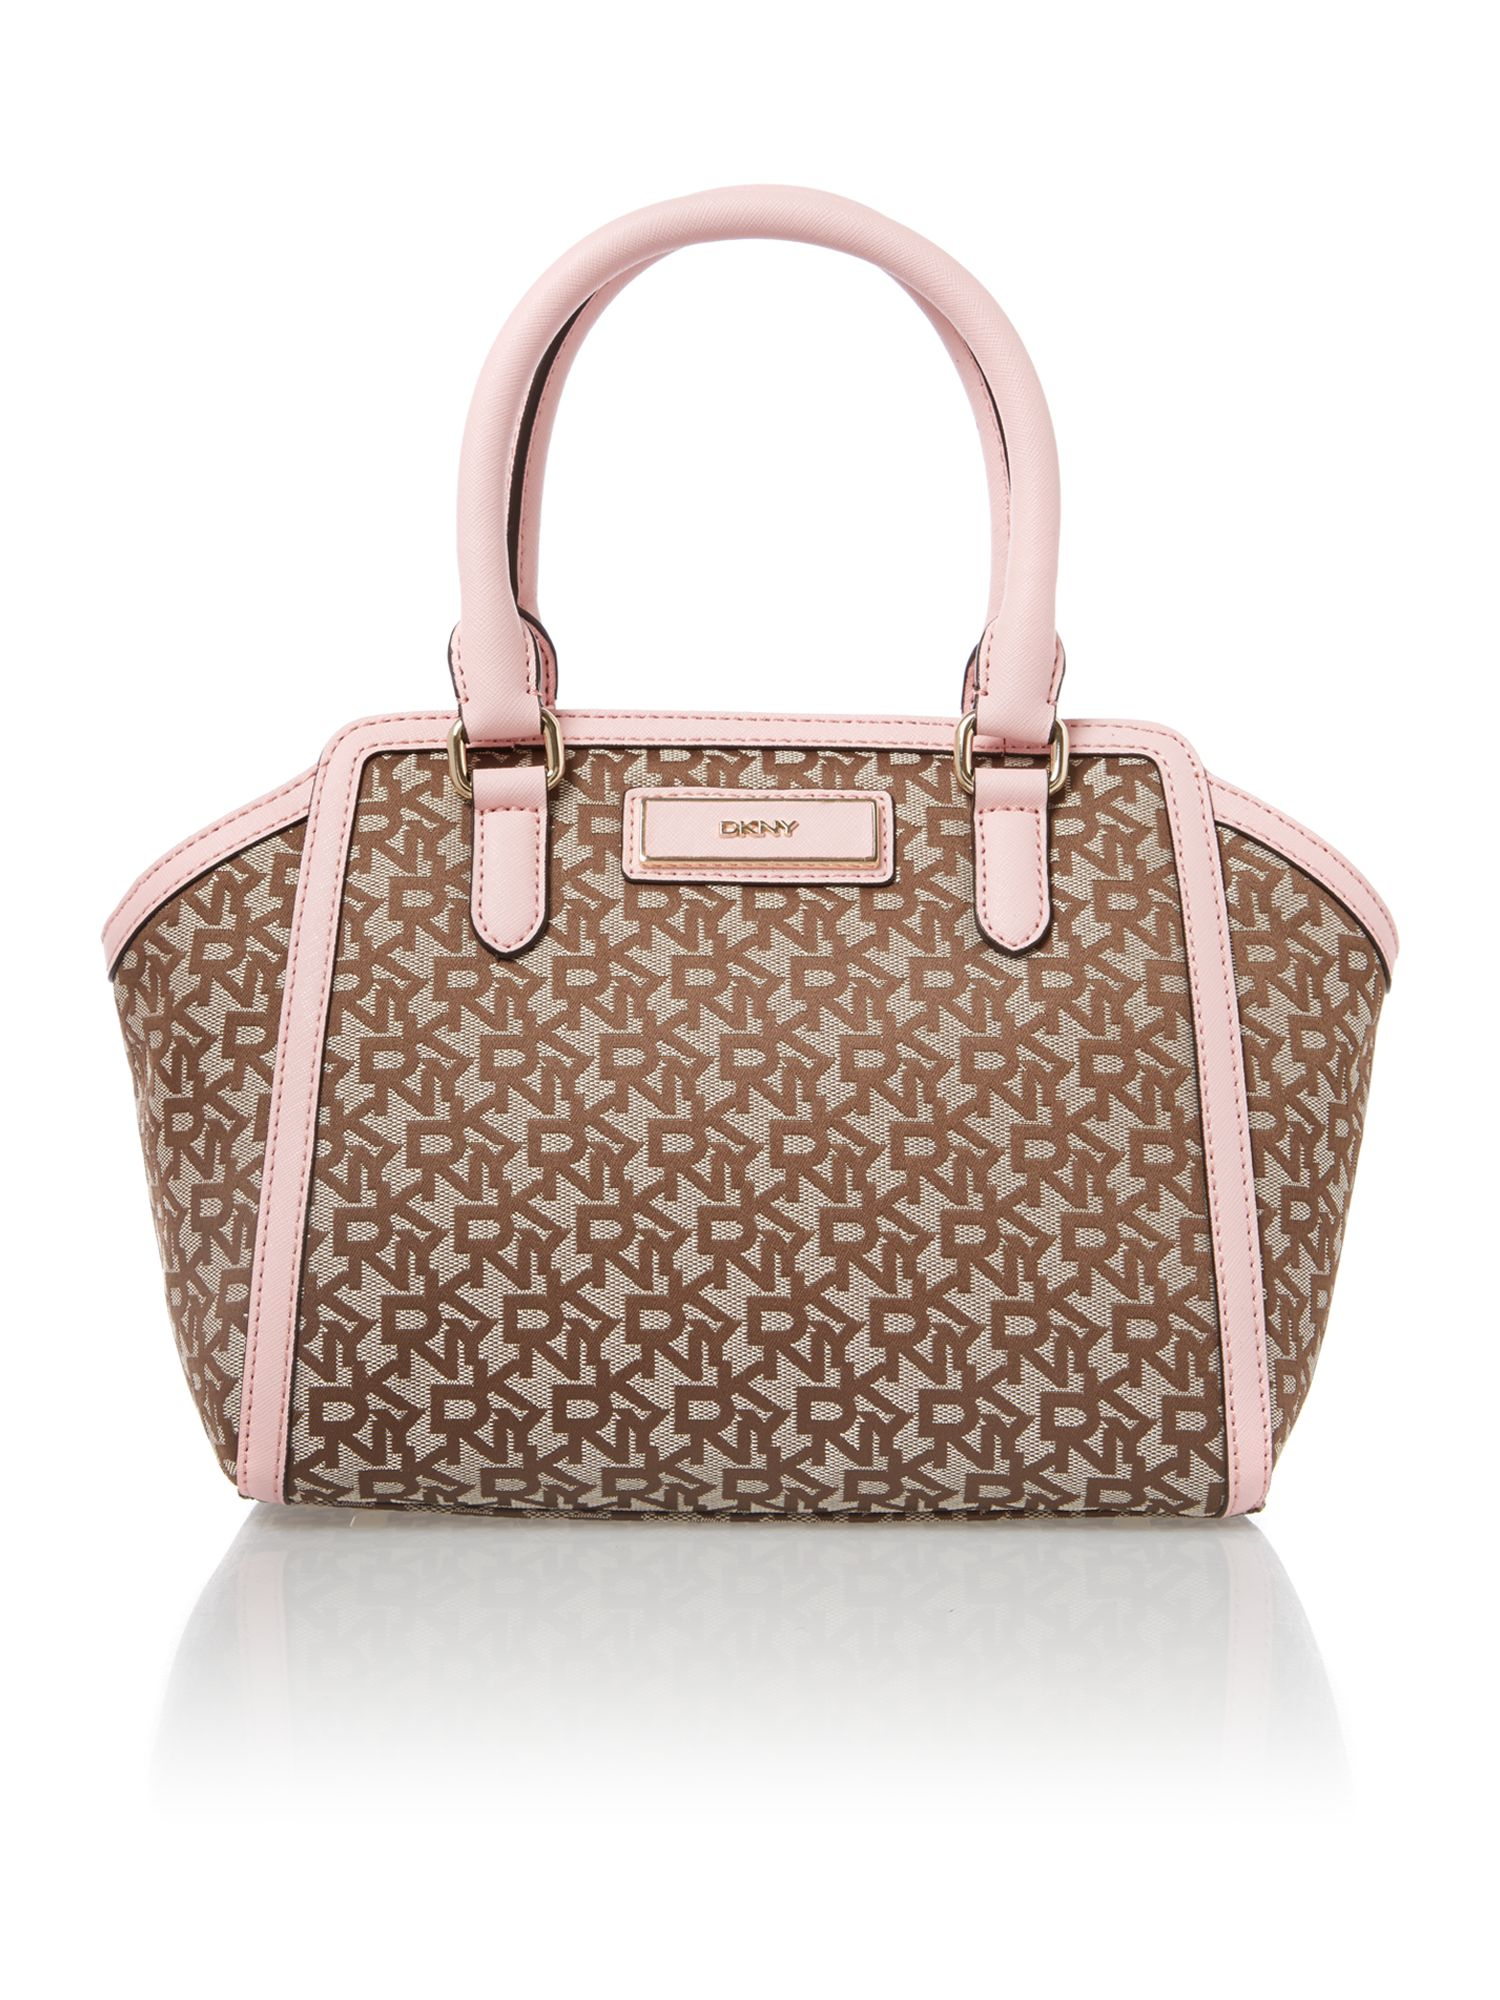 Saffiano pink small tote bag